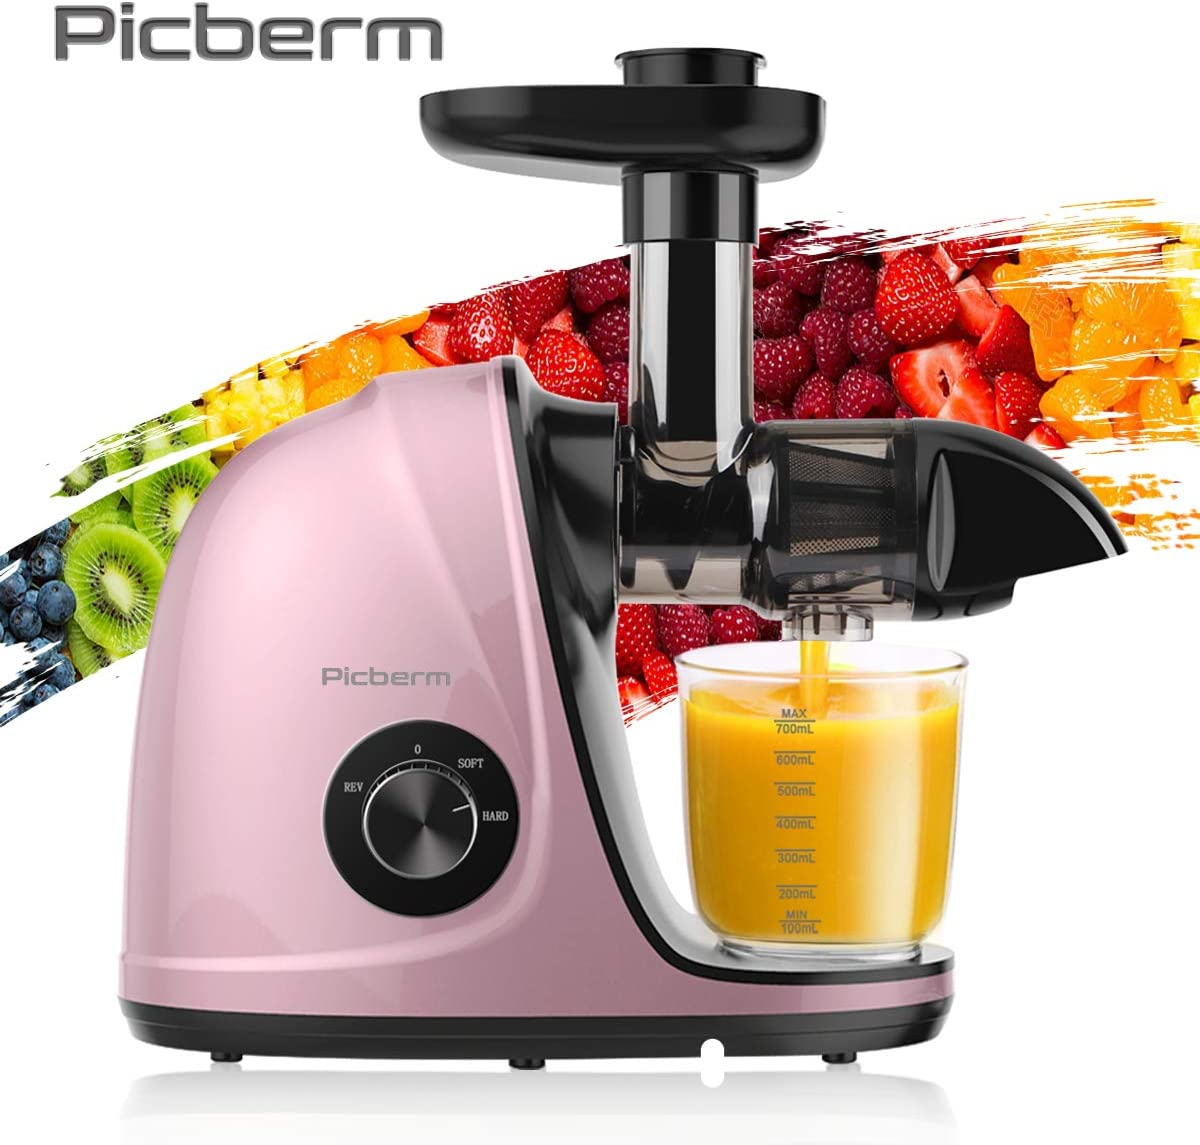 Juicer Machines, Picberm PB2110V Slow Masticating Juicer Extractor with Quiet Motor Easy to Clean, BPA-Free Anti-clogging Cold Press Juicer with Peeler, Brush, Recipes for Fruits and Vegetables, Pink